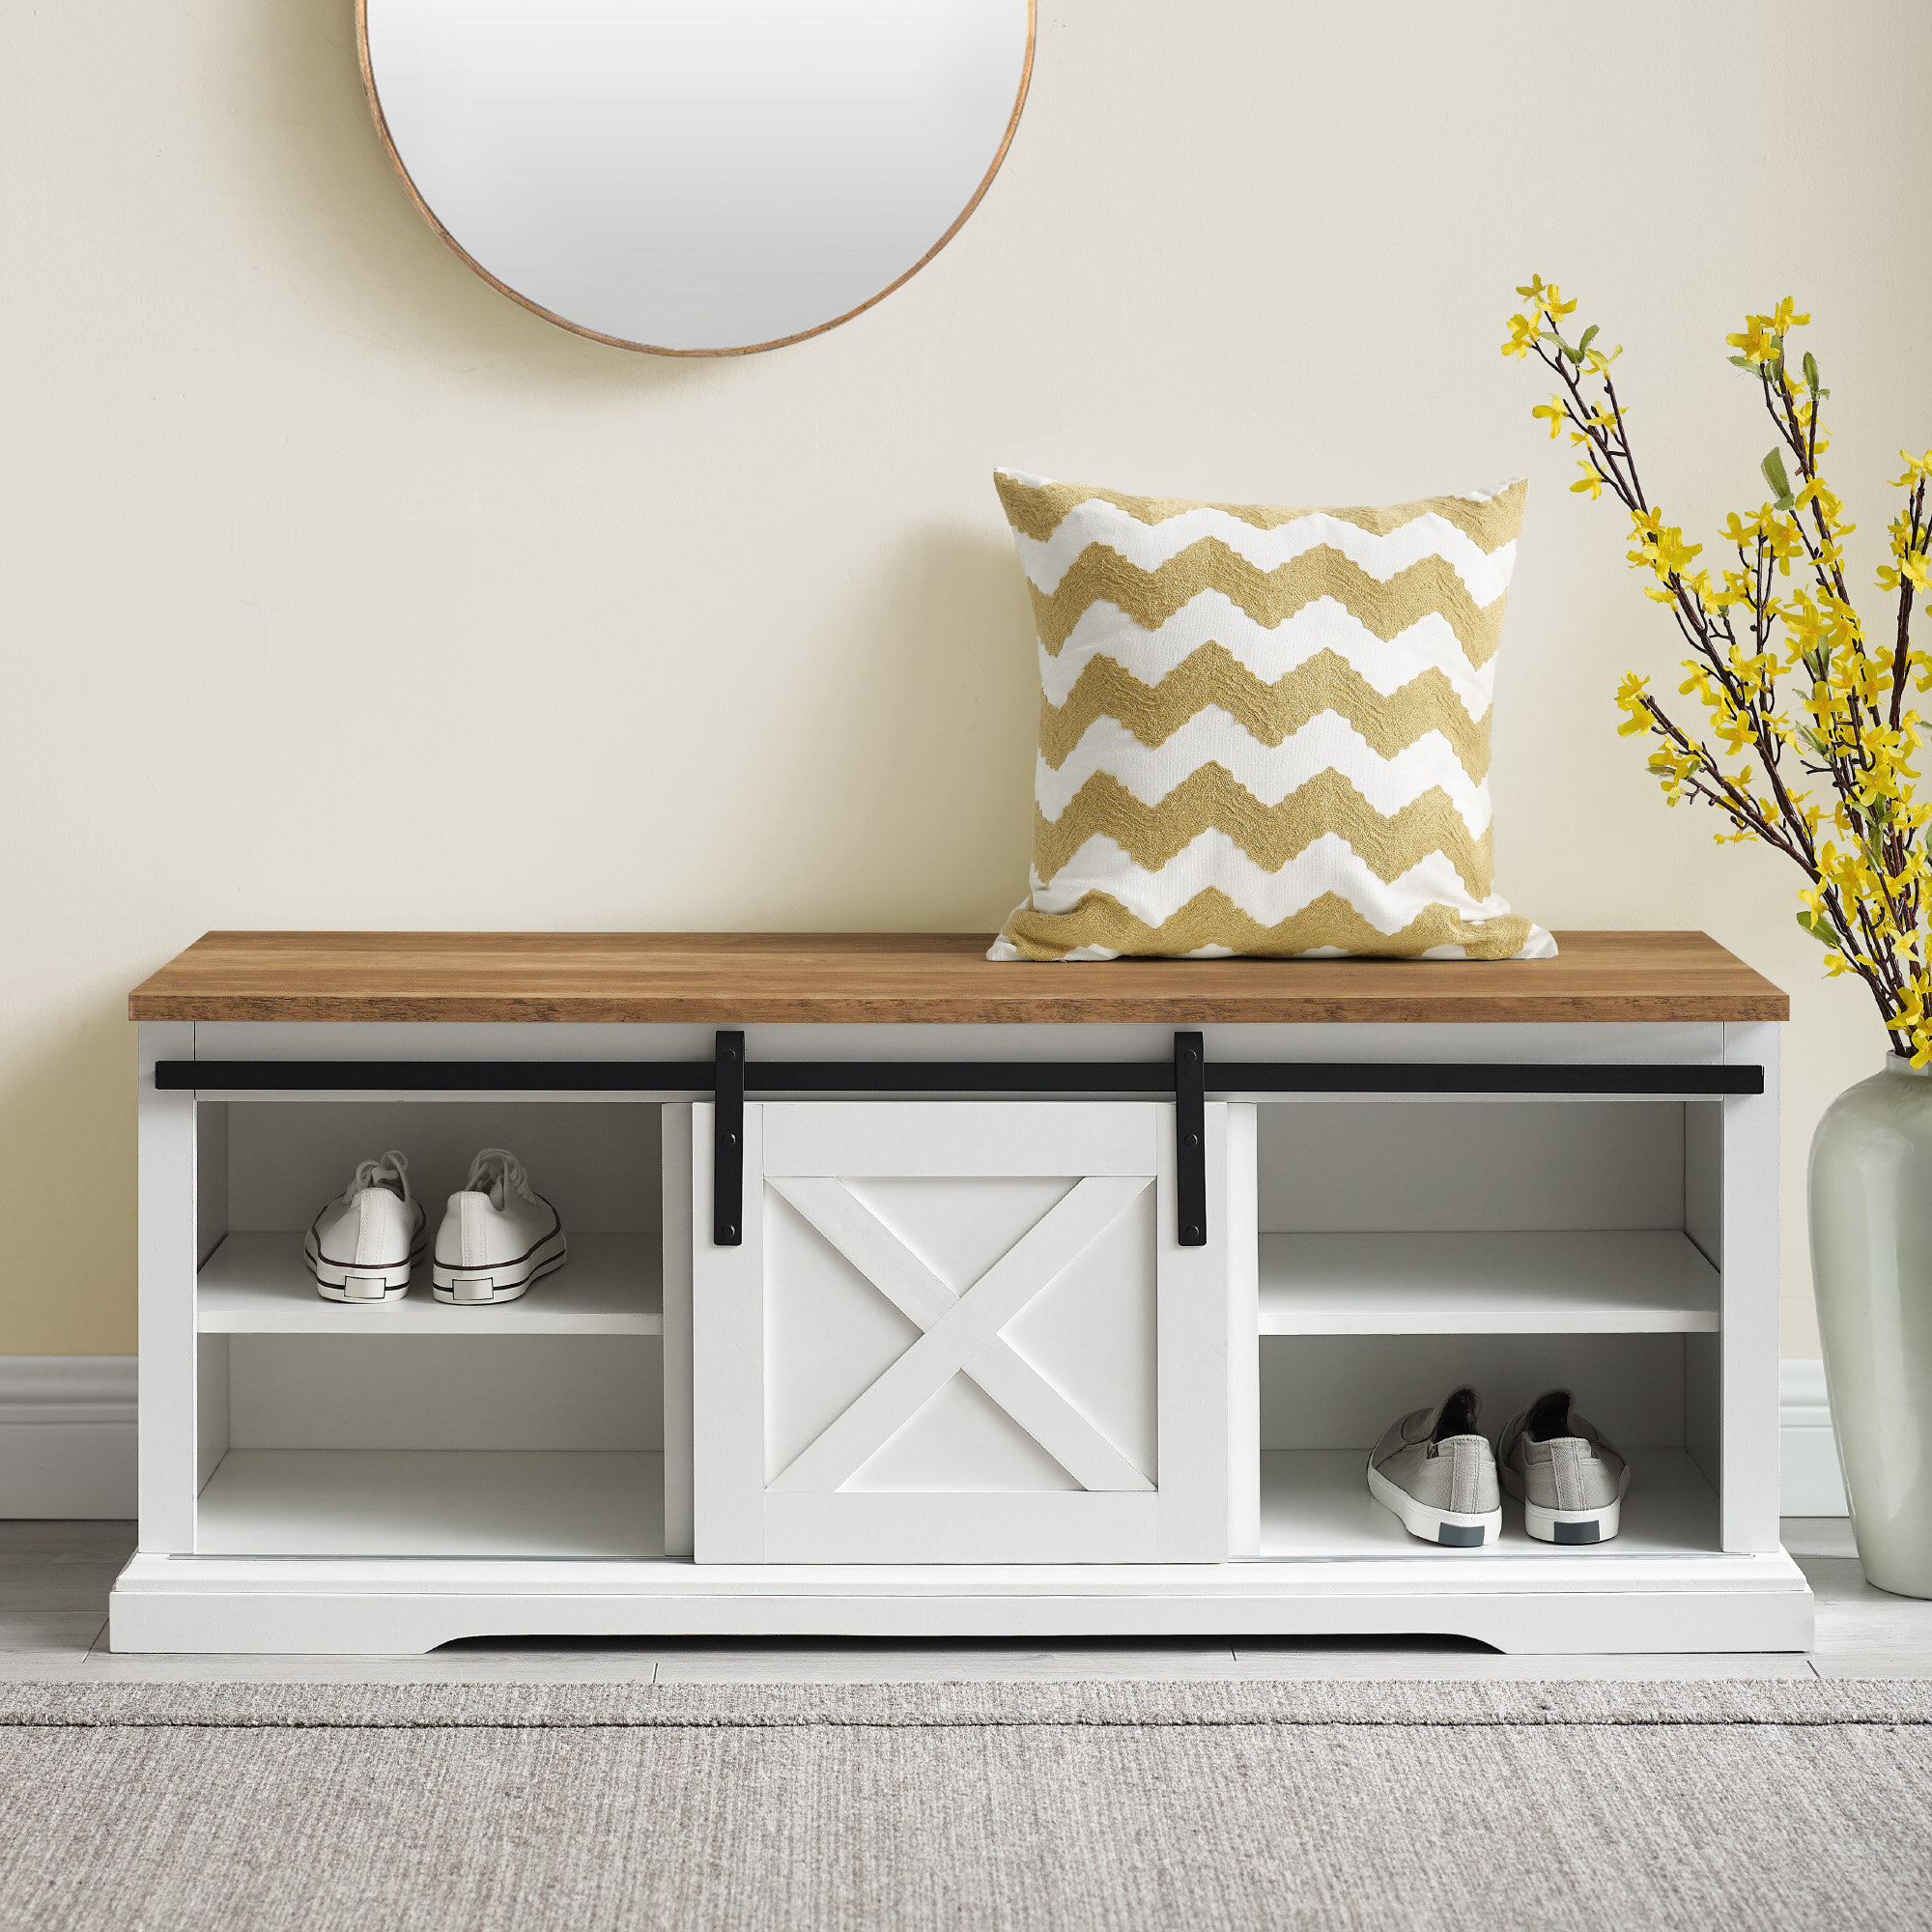 Picture of: Entryway Shoe Storage Equipped Benches You Ll Love In 2020 Wayfair